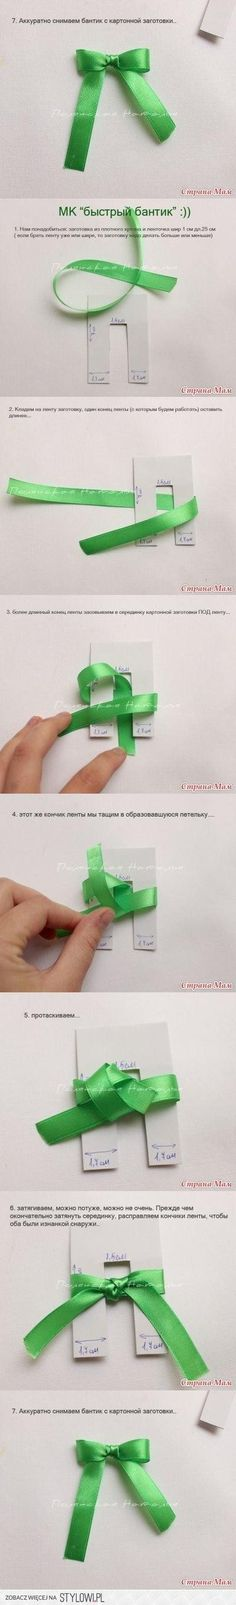 DIY Easy Ribbon Bow DIY Projects | UsefulDIY.com na Stylowi.pl